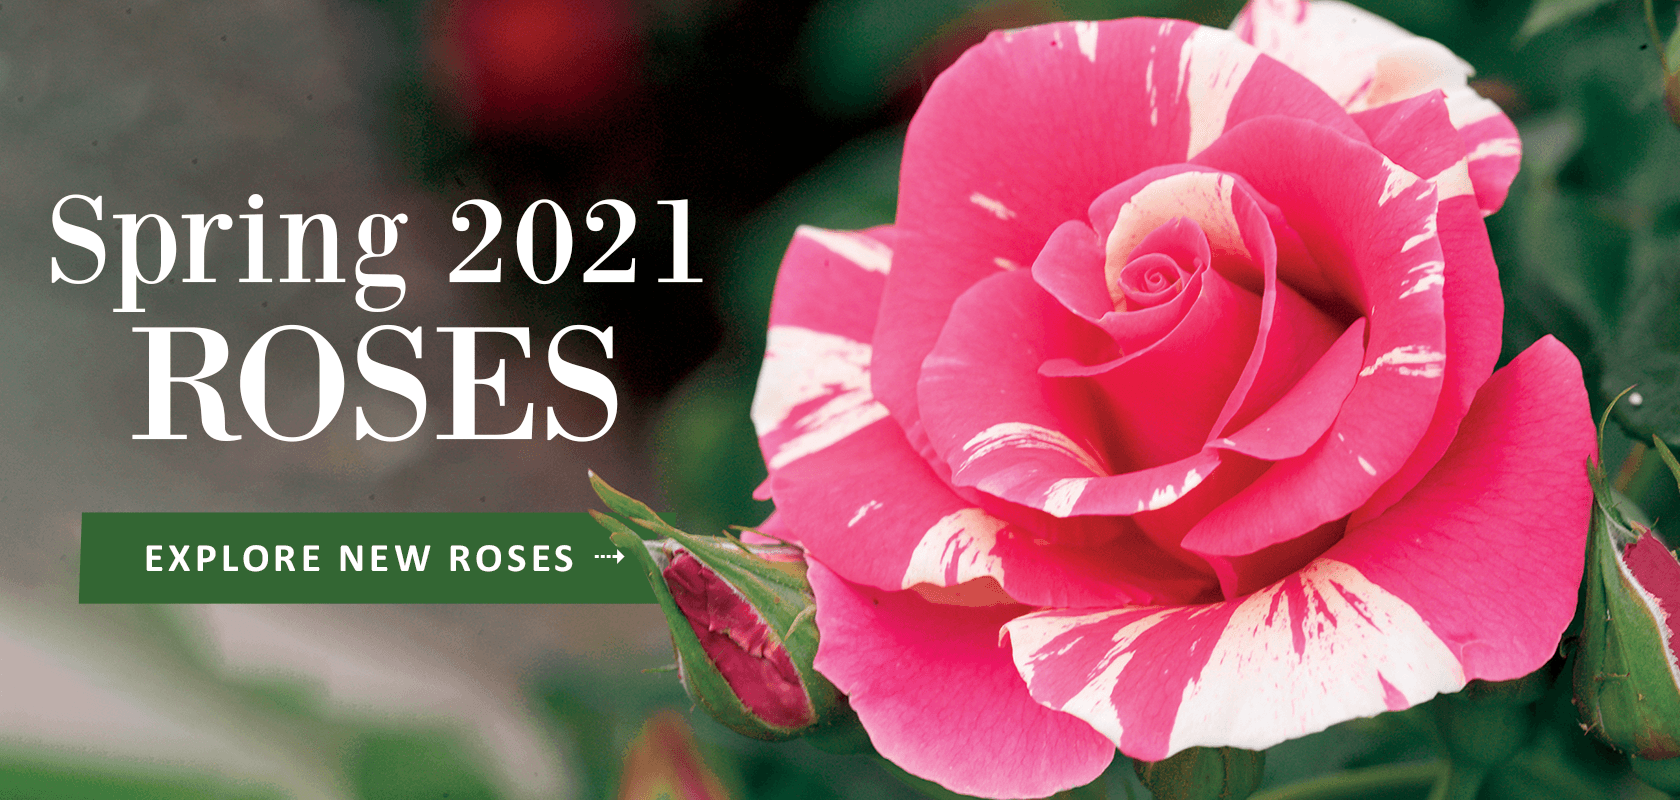 Spring 2021 Roses